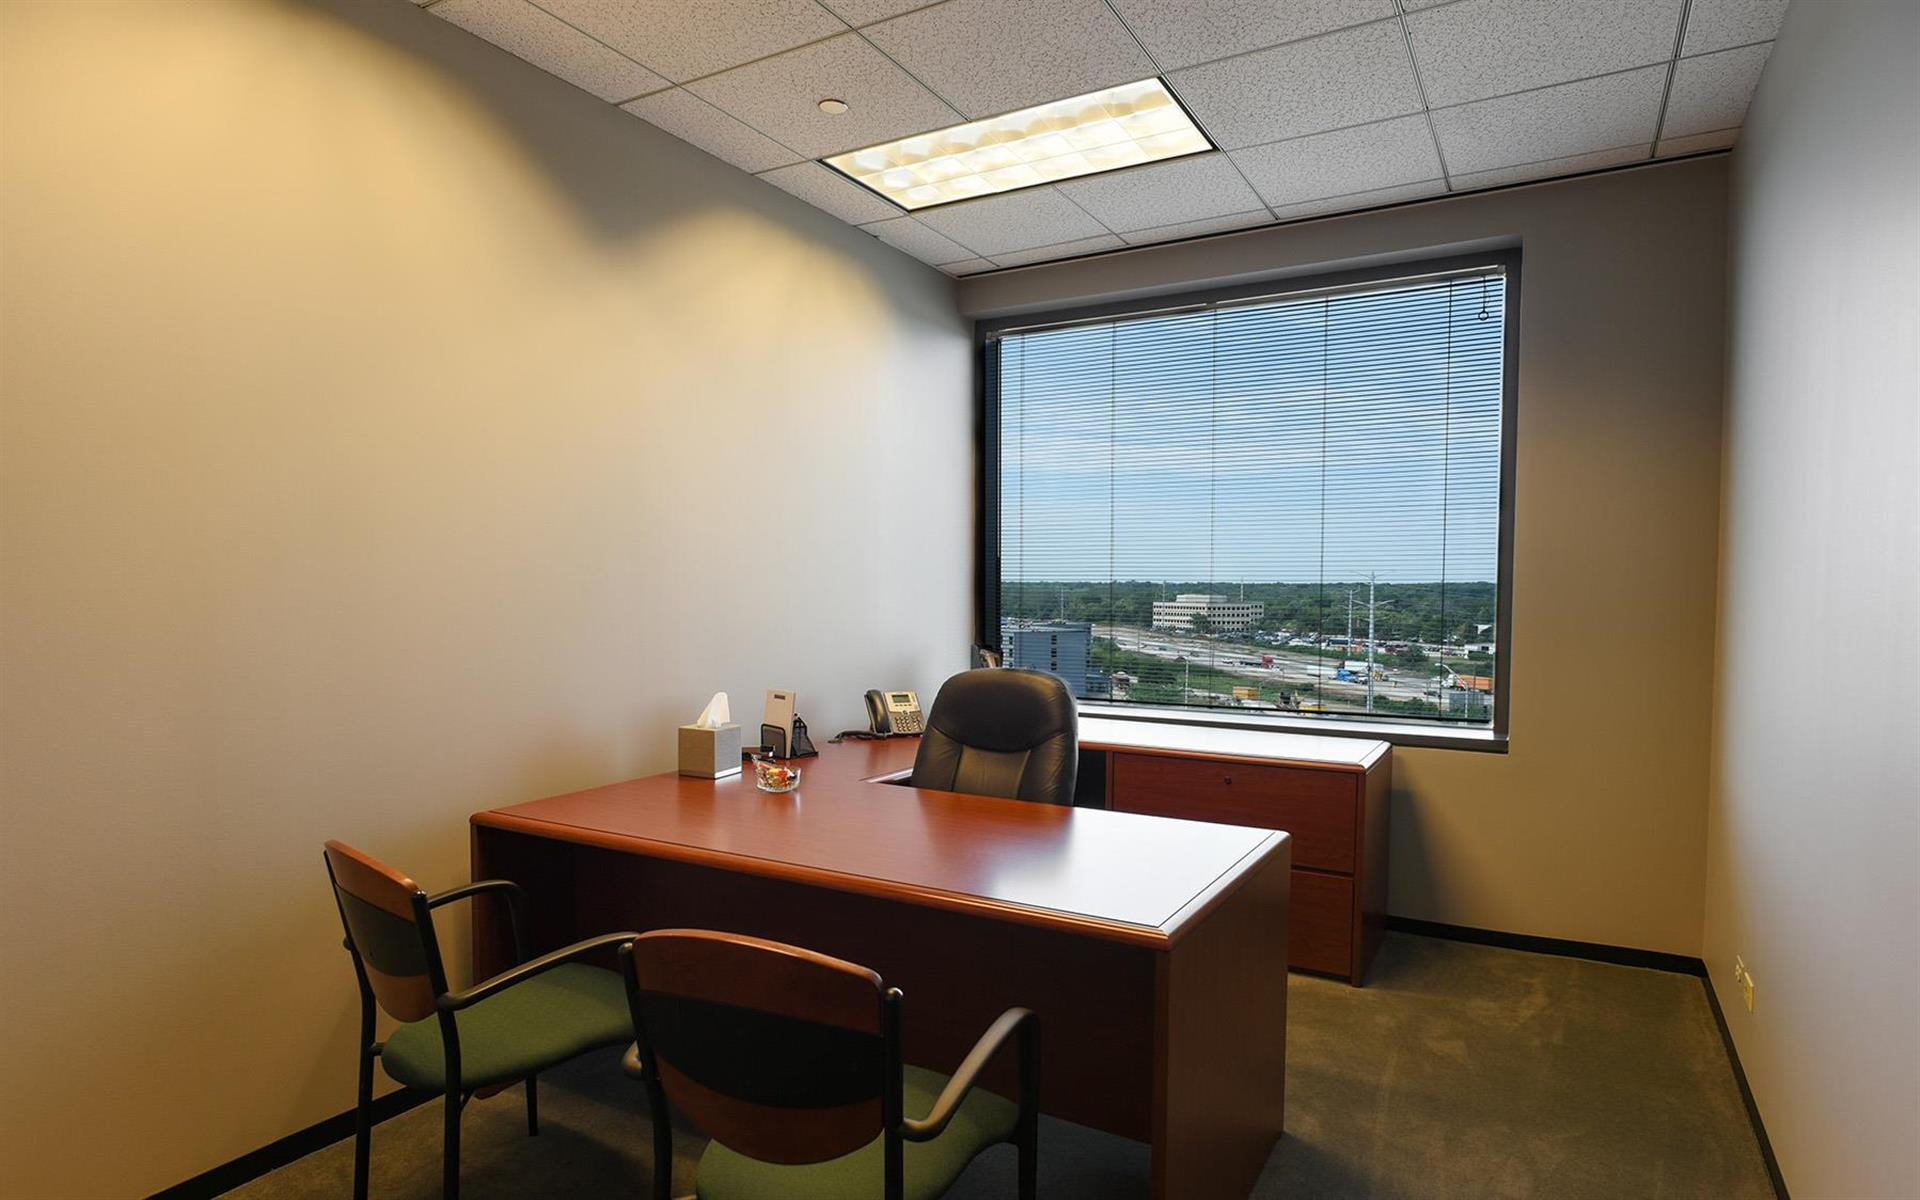 My Office Suite - Chatham - Day Office Suite 839